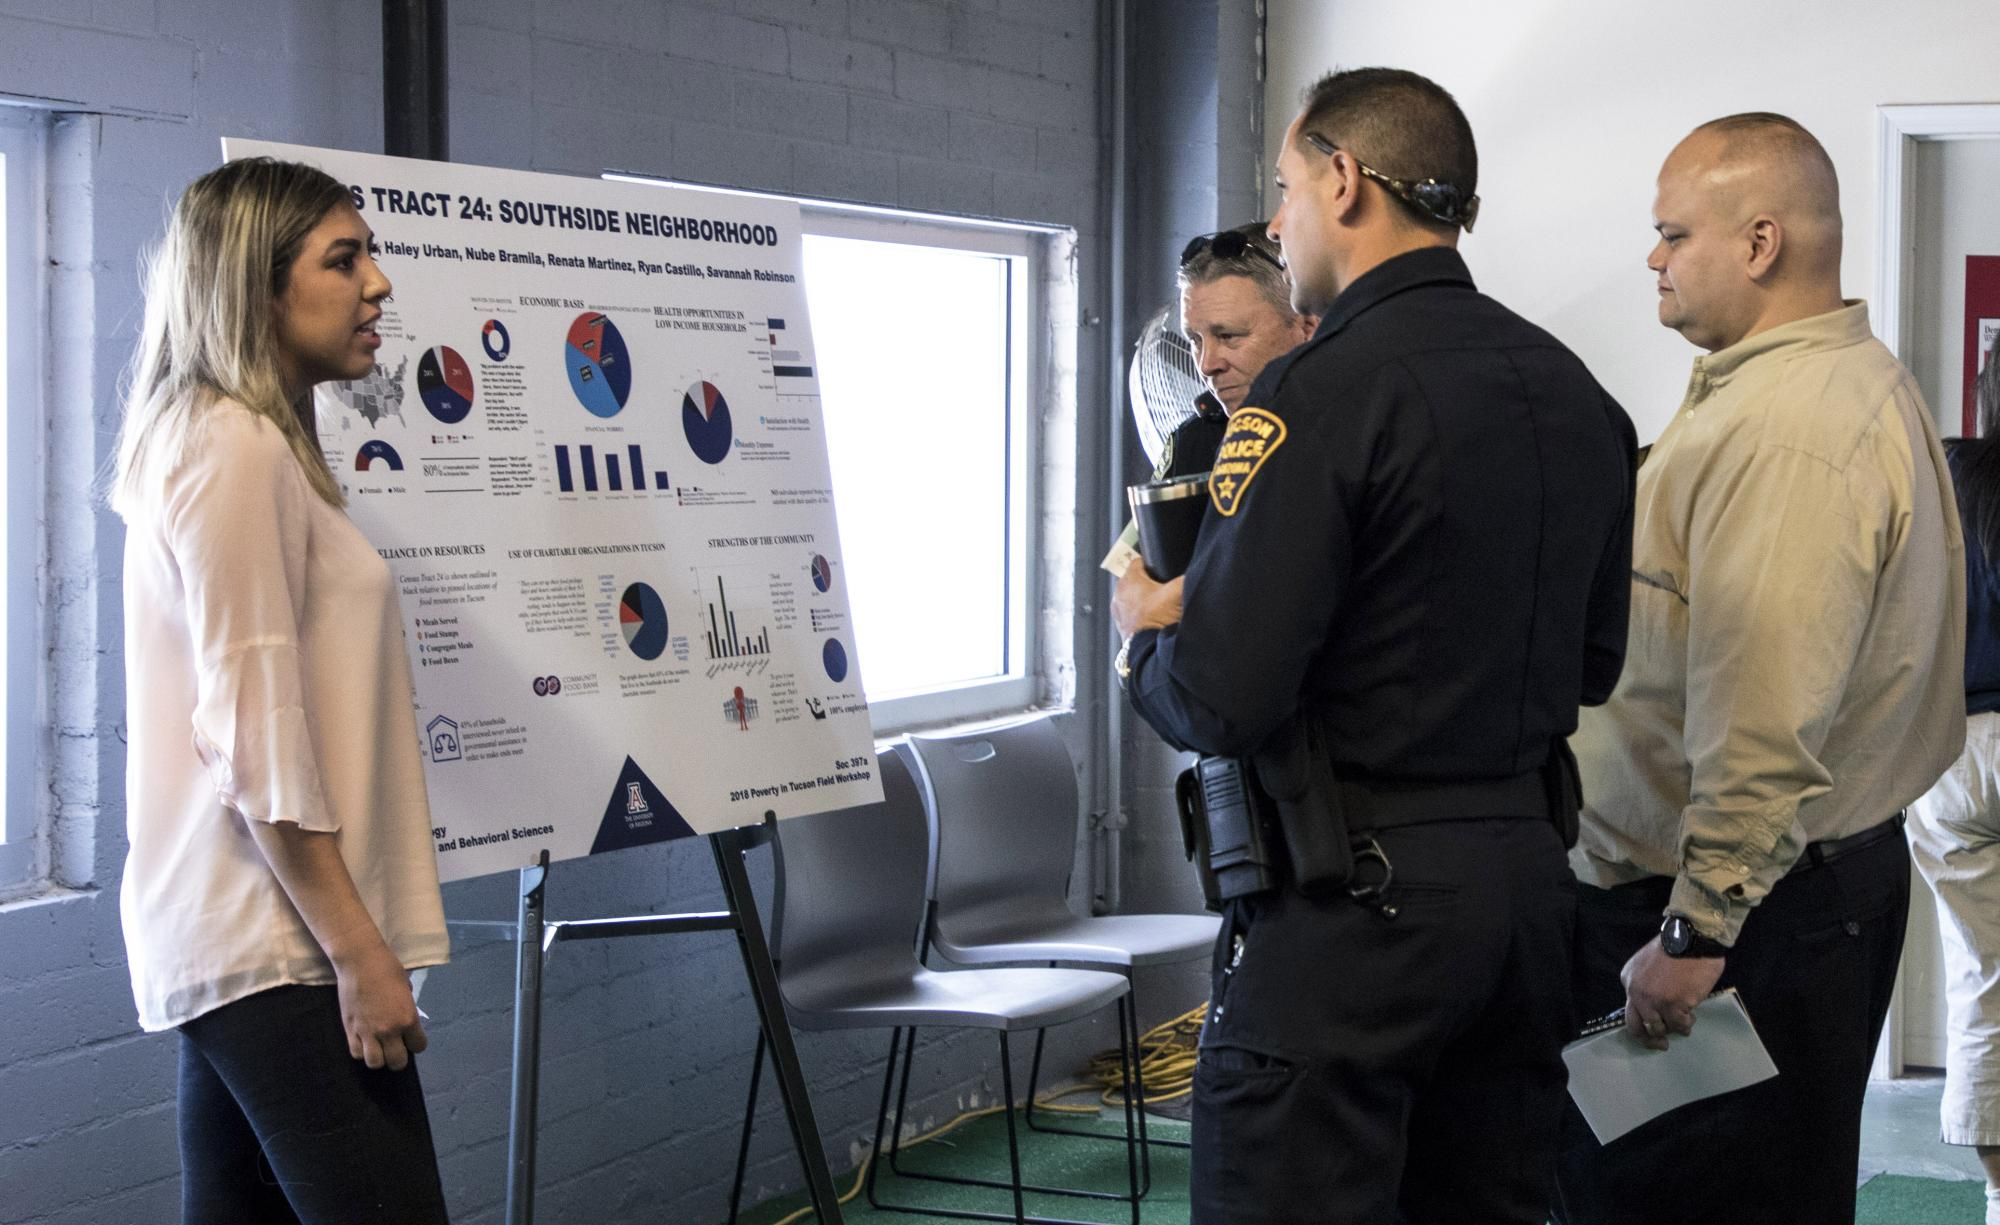 Several Tucson police officers and firefighters attended the poverty forum. Students in next year's class will collaborate with the Tucson Fire Department's TC-3 program, a collaborative community care program.